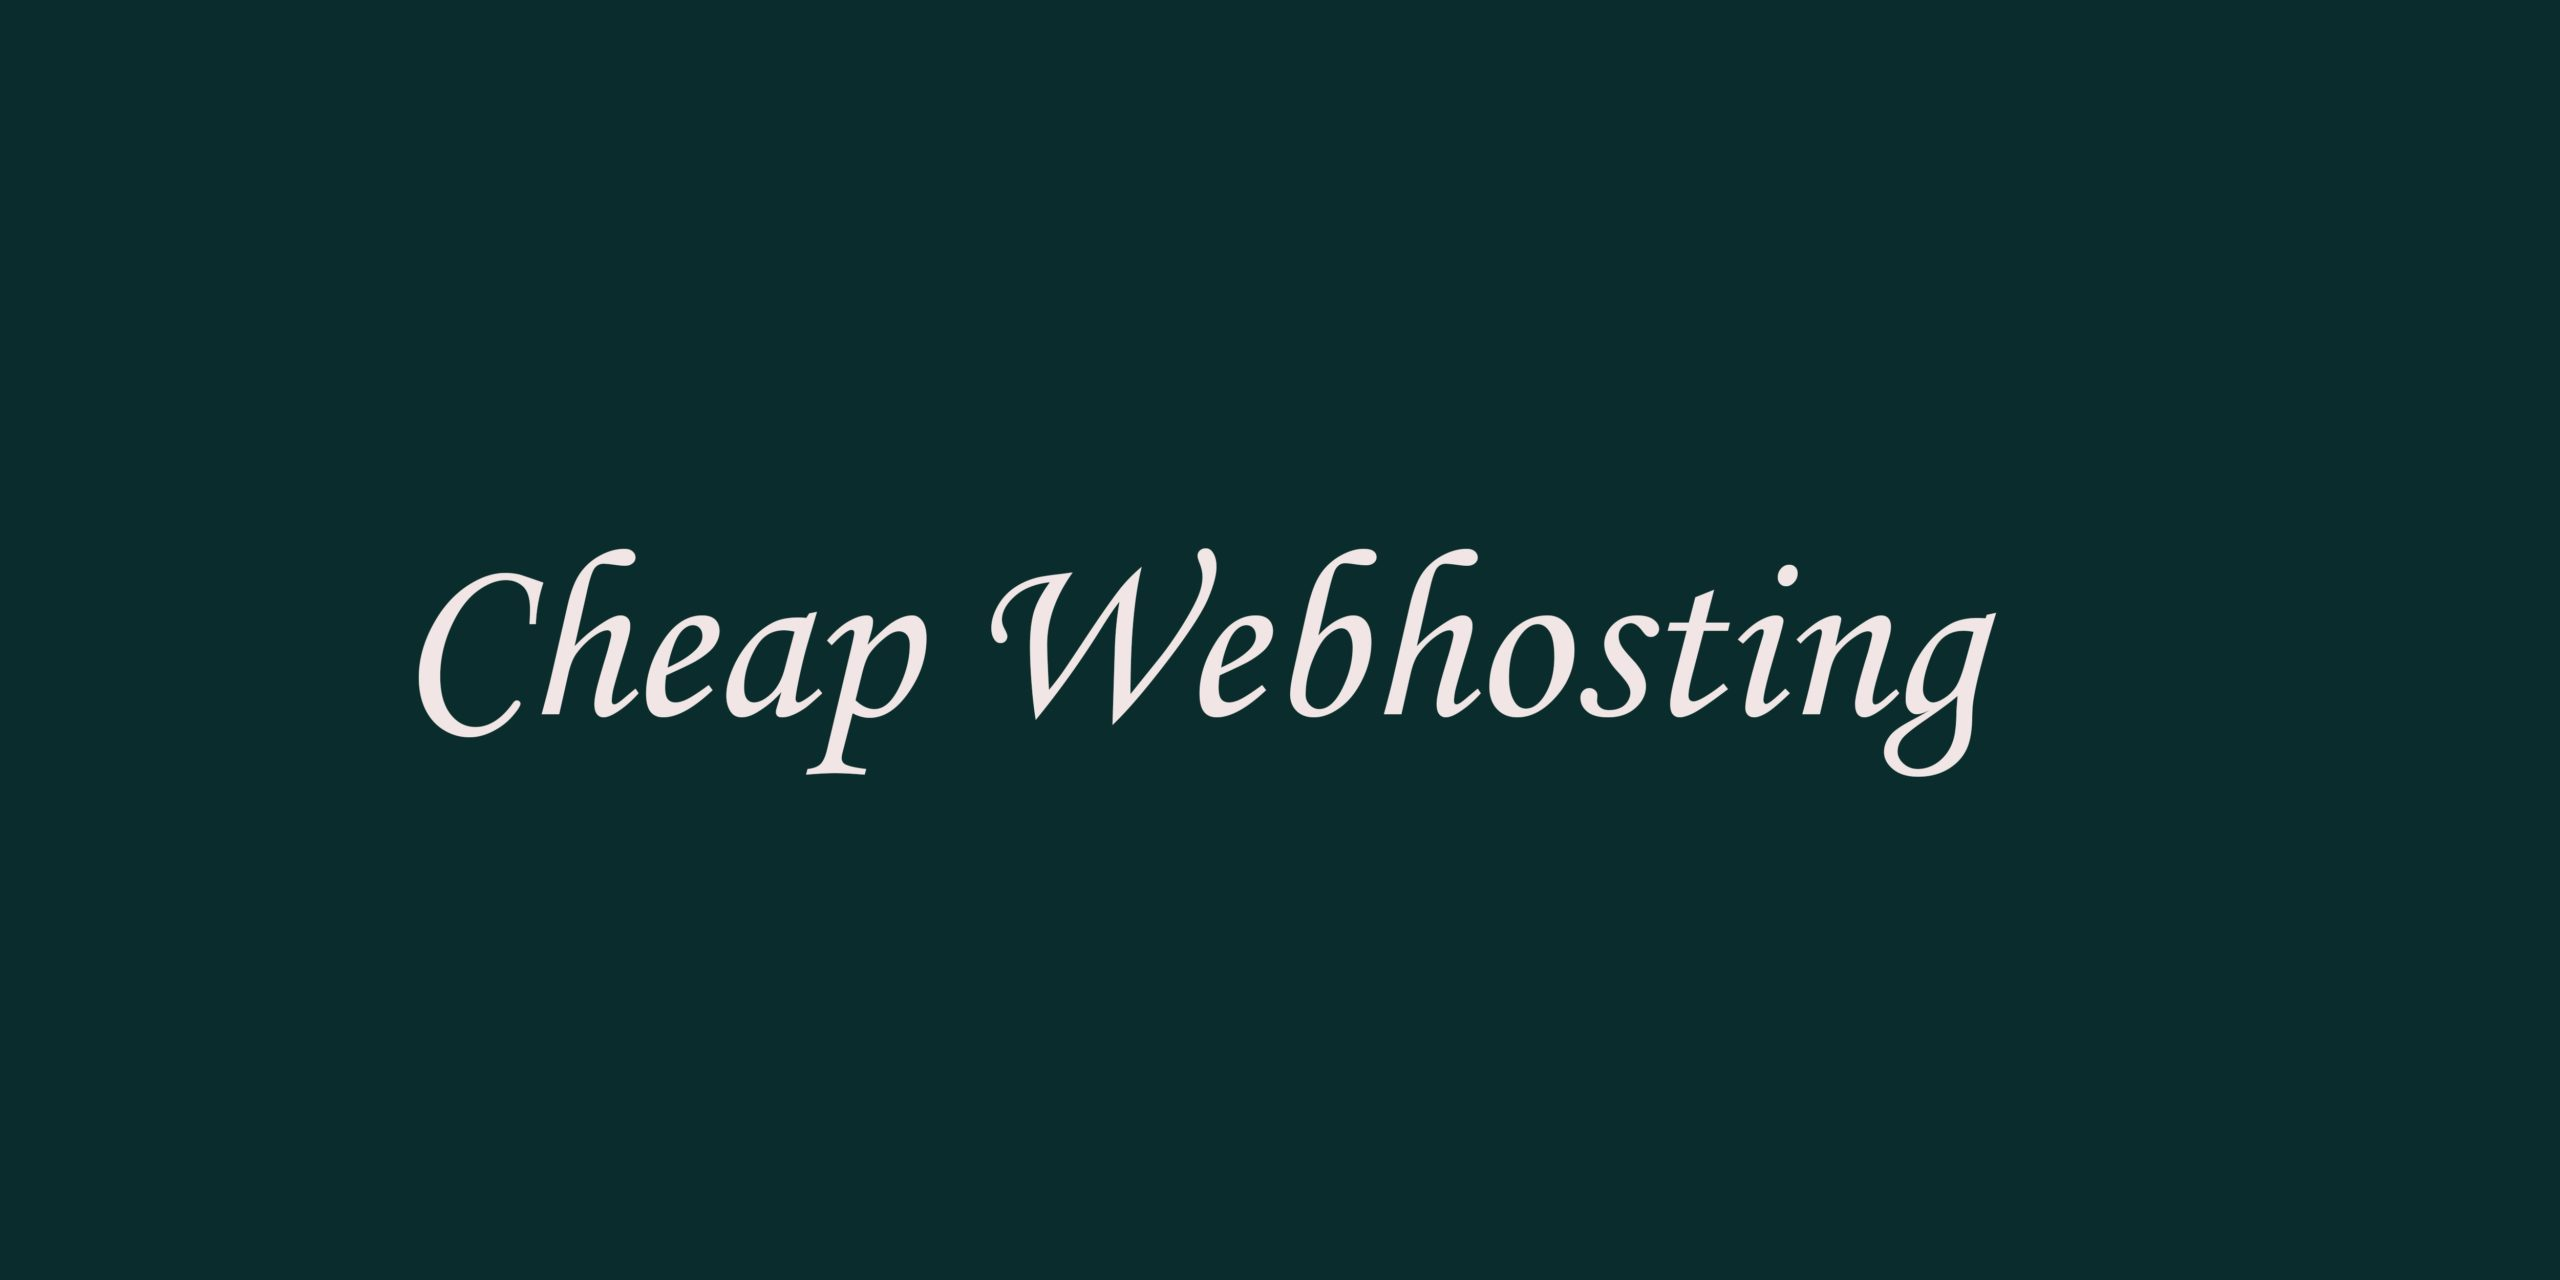 low-cost-hosting-plans